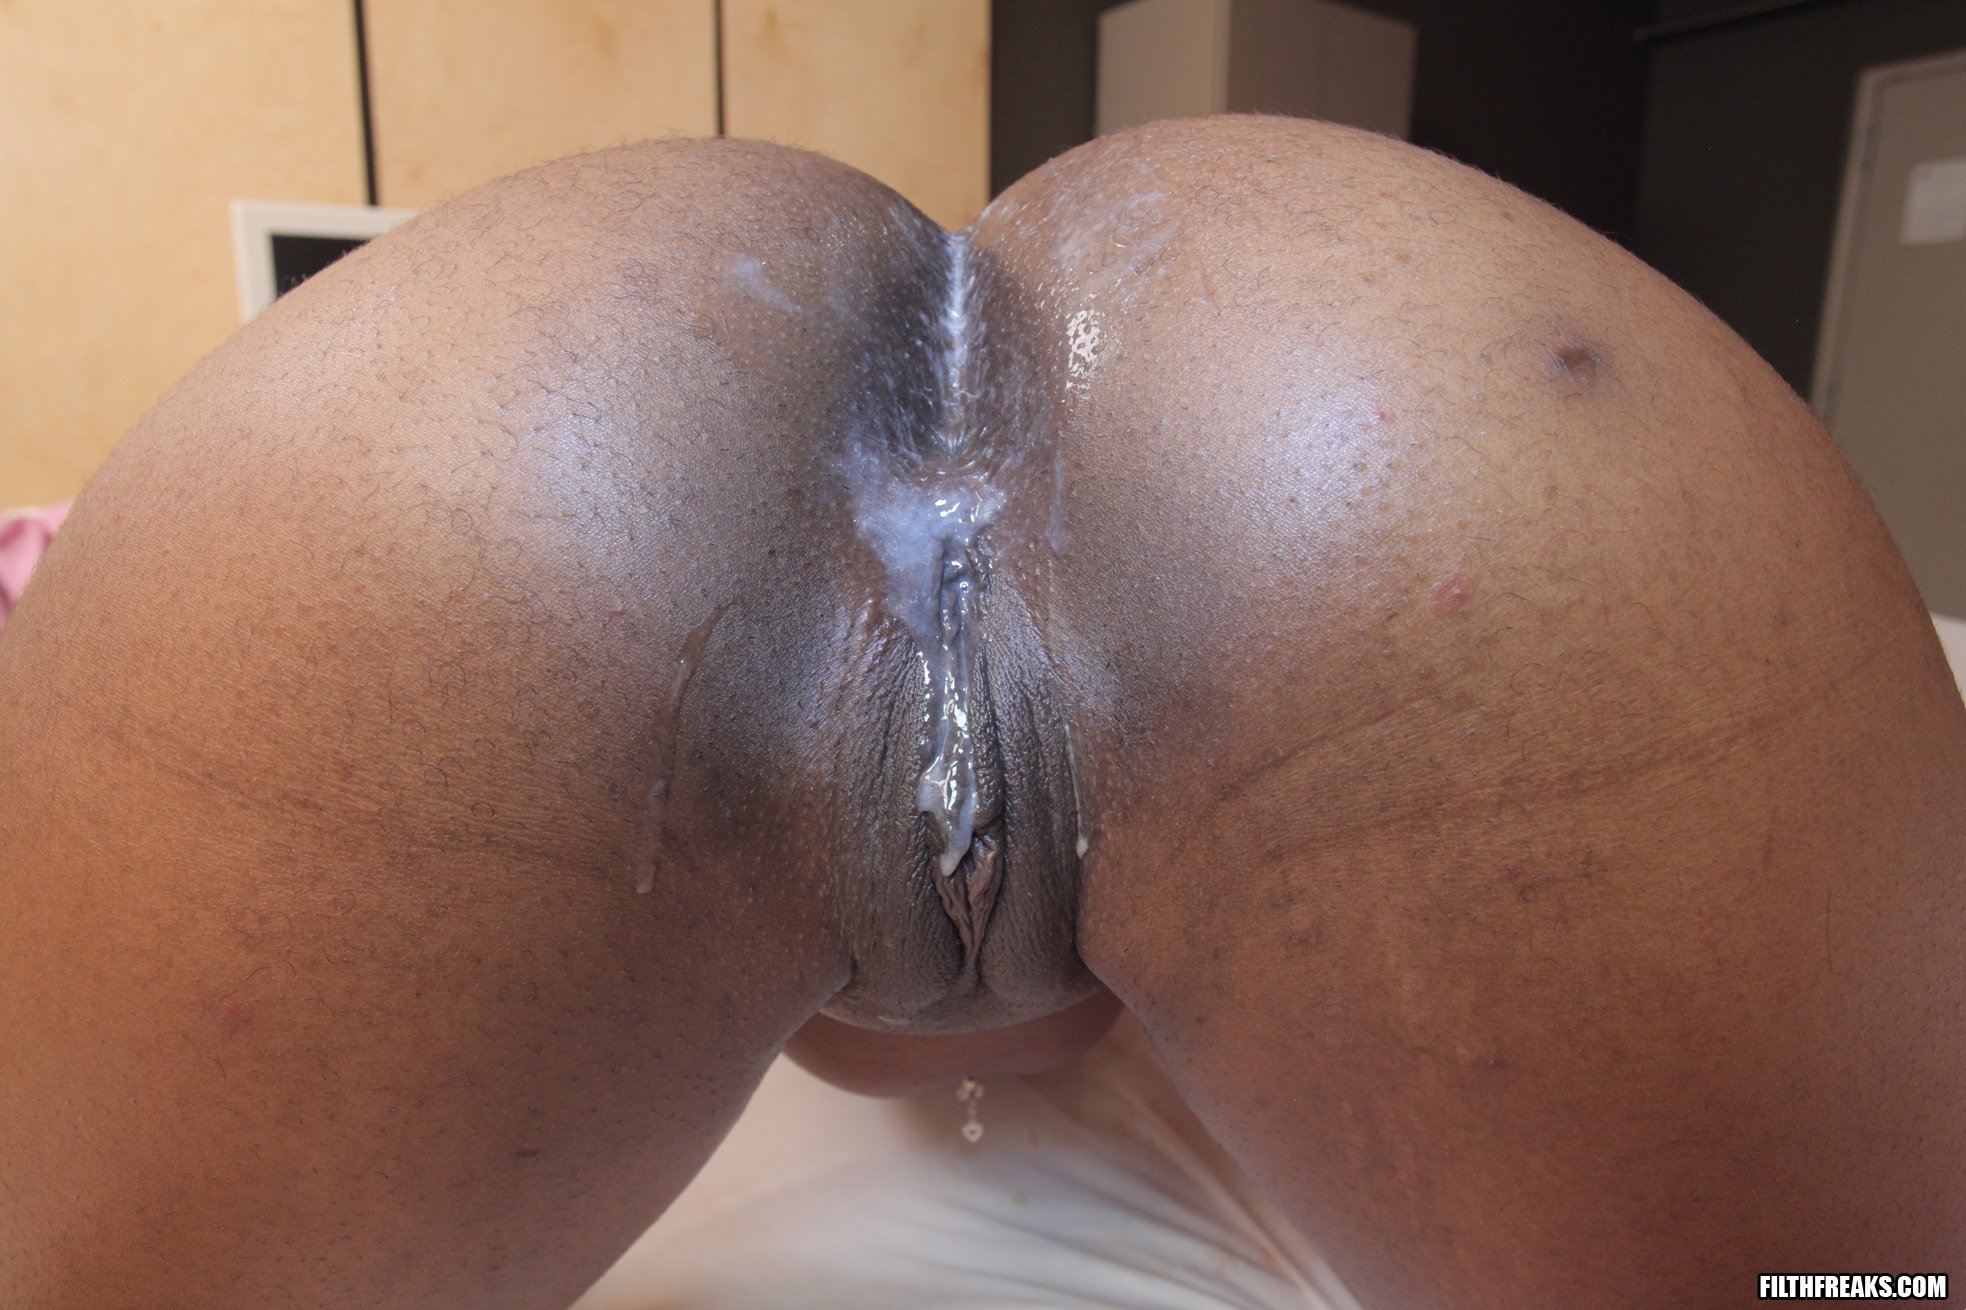 Black girl pussy dripping with cum, beauriful girls sex